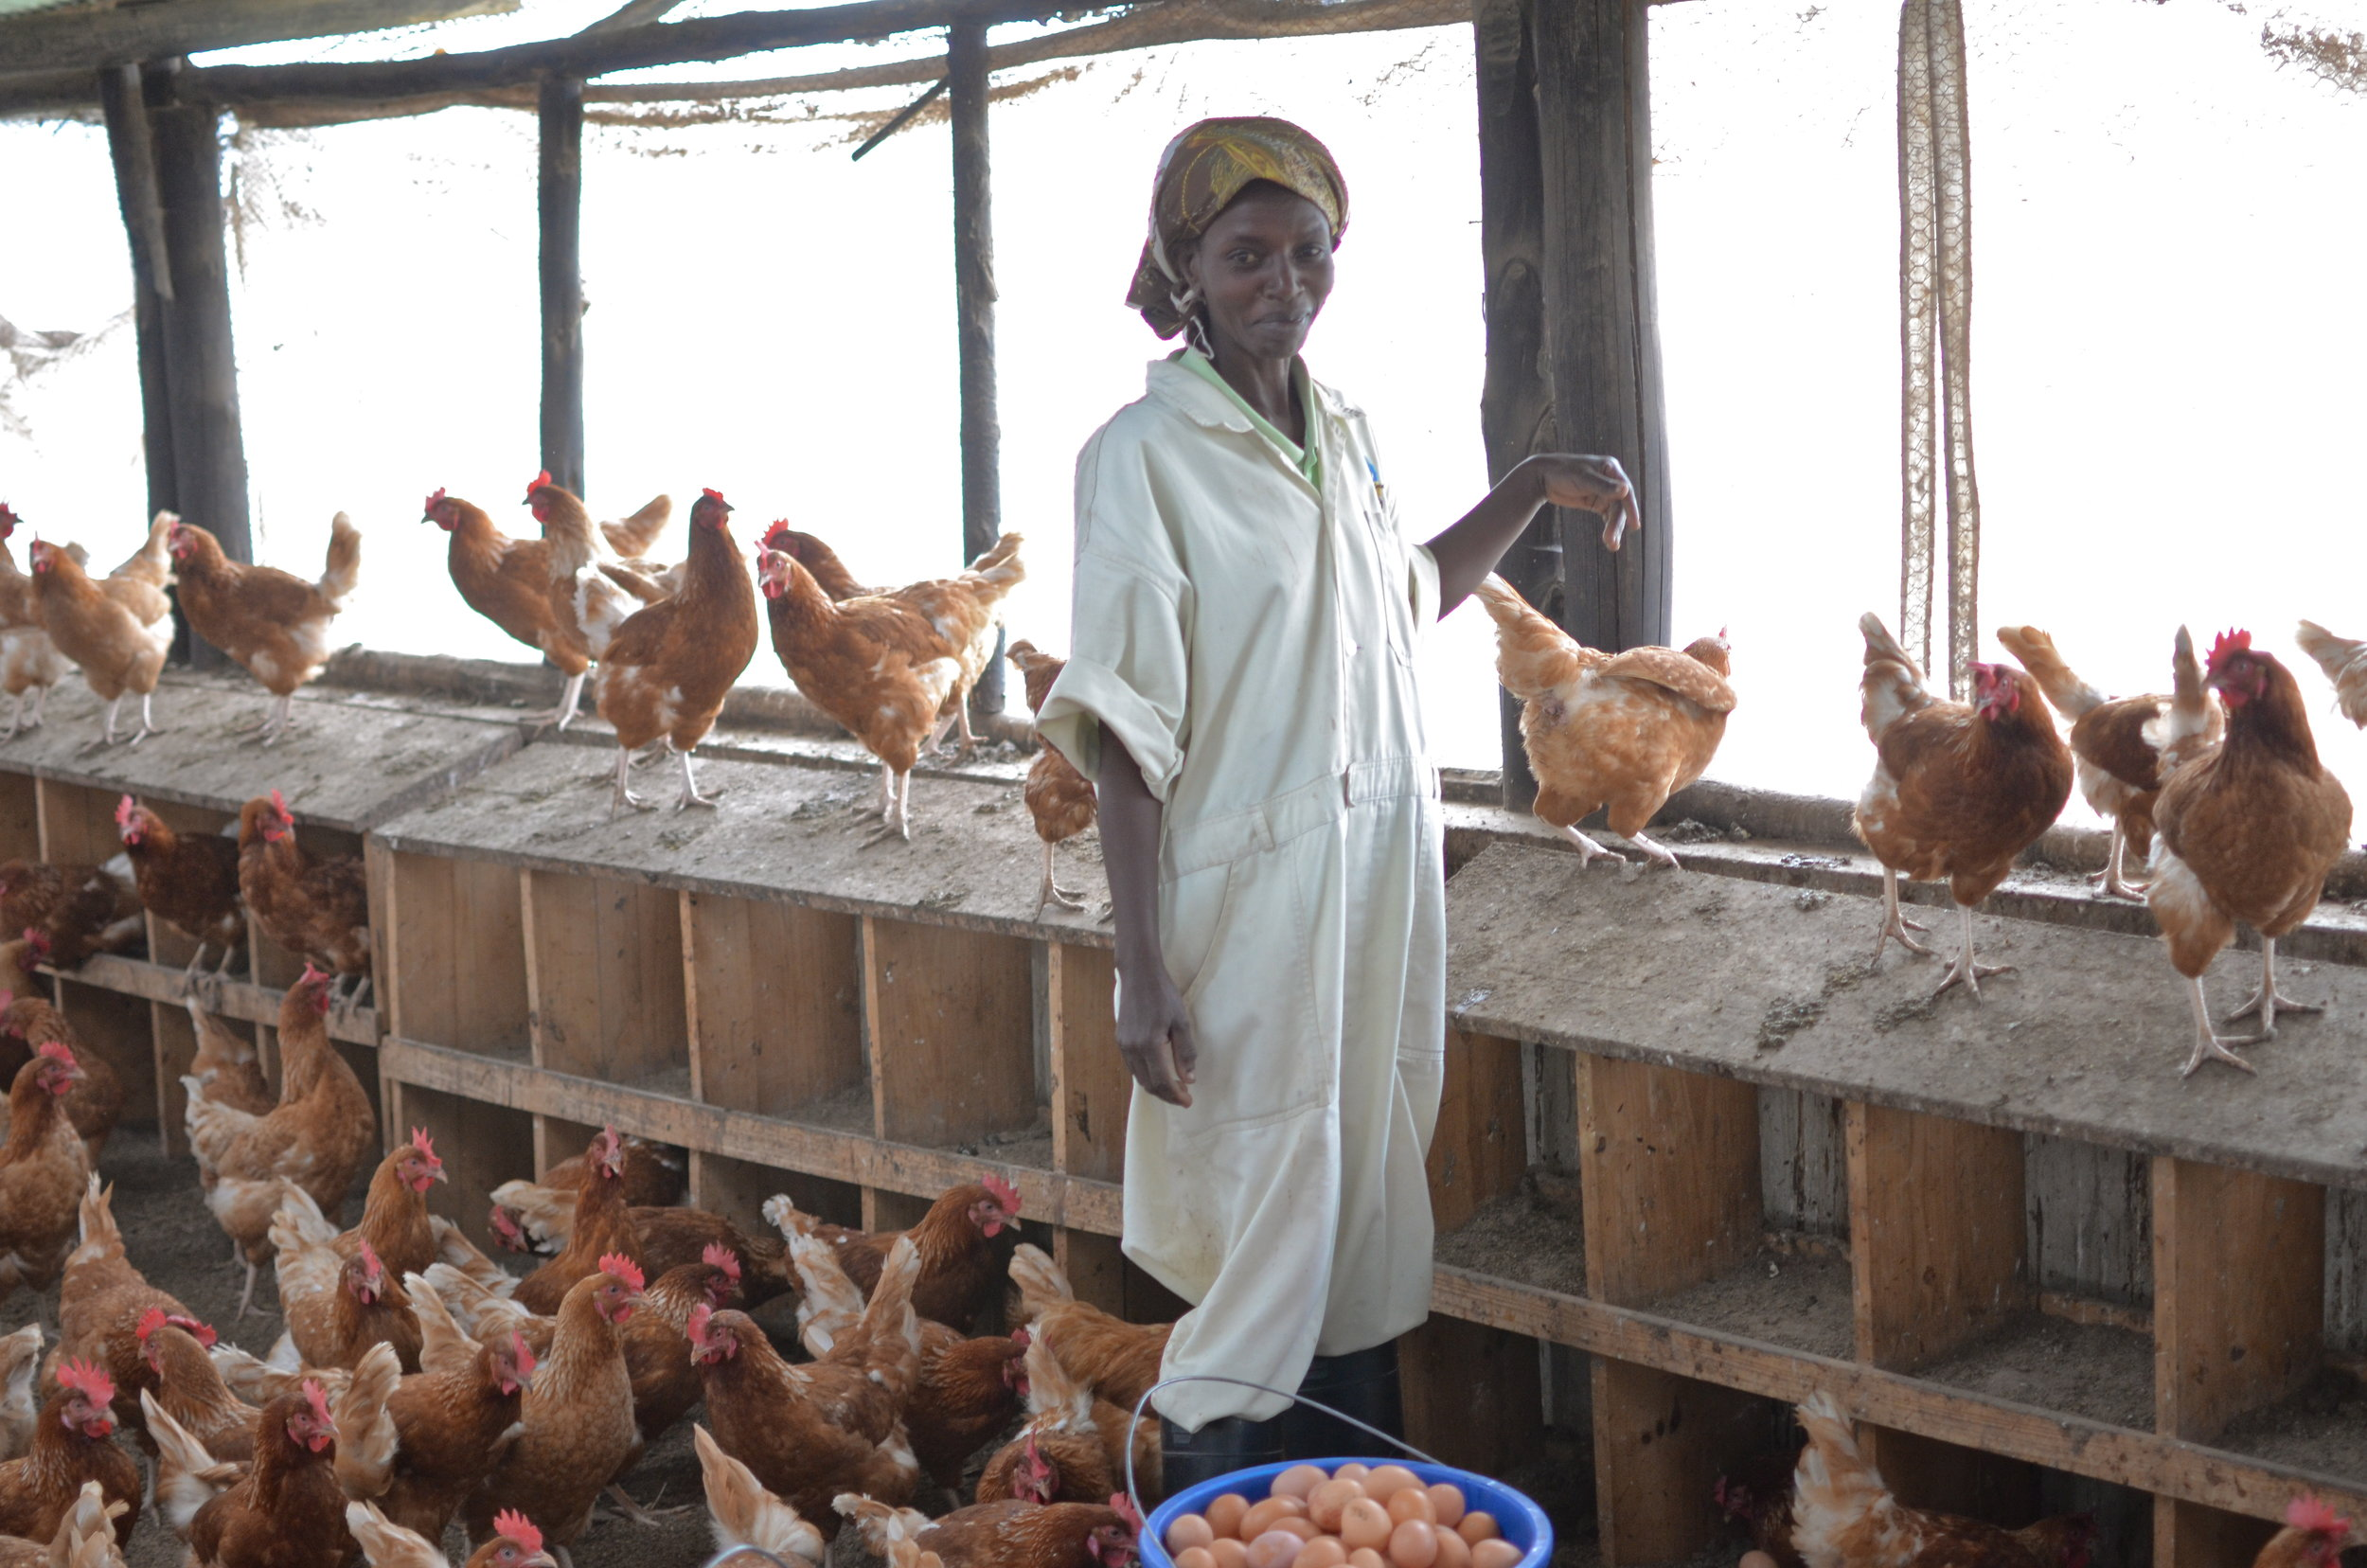 Zamura Farms - Zamura Farms was the first commercial egg operation in Rwanda. Its initial goal was to employ women and genocide victims. The farm also provides eggs to our partner One Egg.